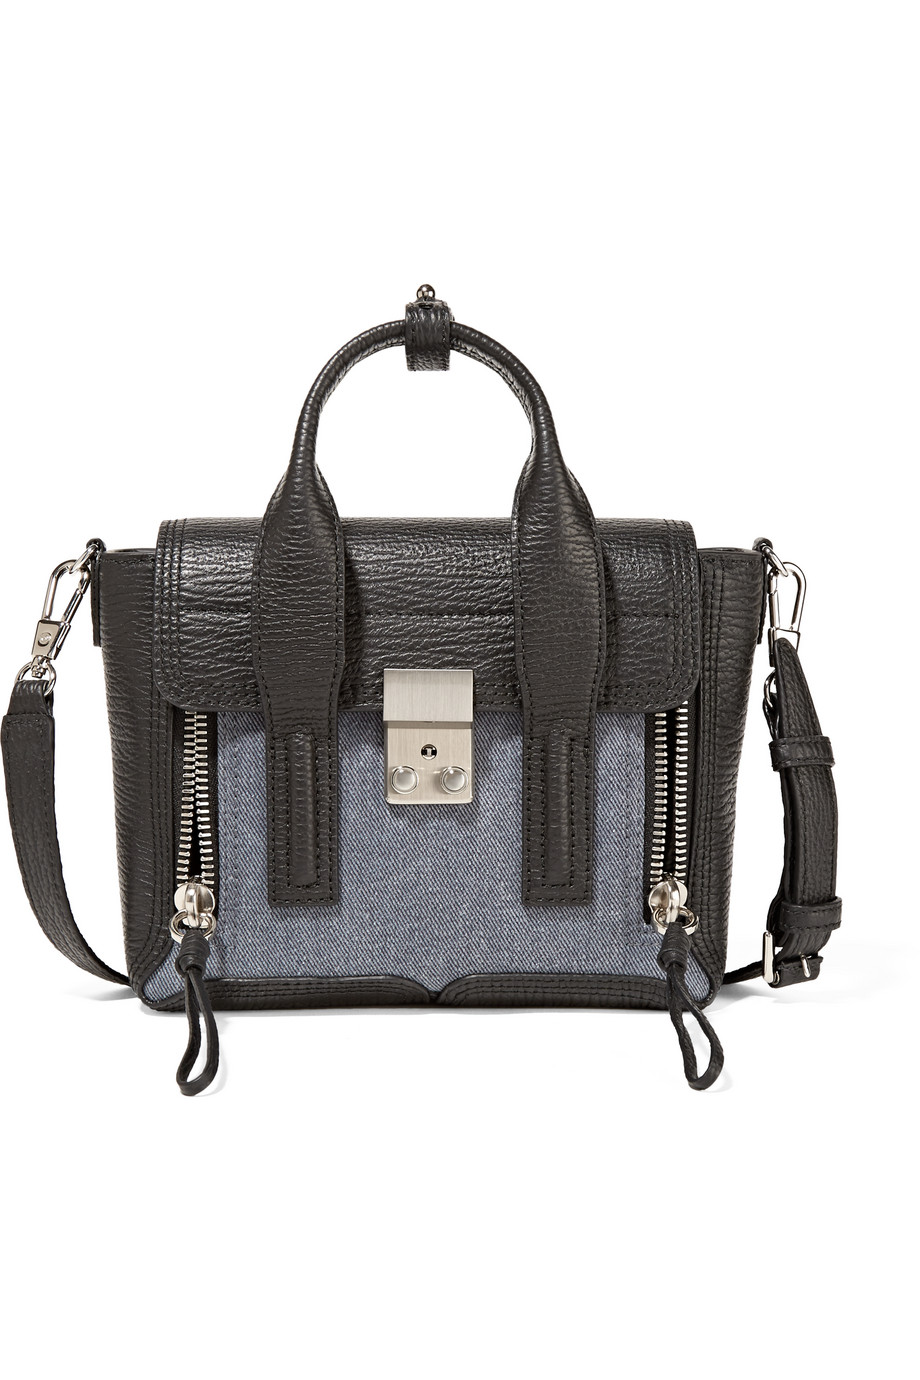 3.1 Phillip Lim The Pashli Mini Denim and Textured-Leather Trapeze Bag, Mid Denim/Black, Women's